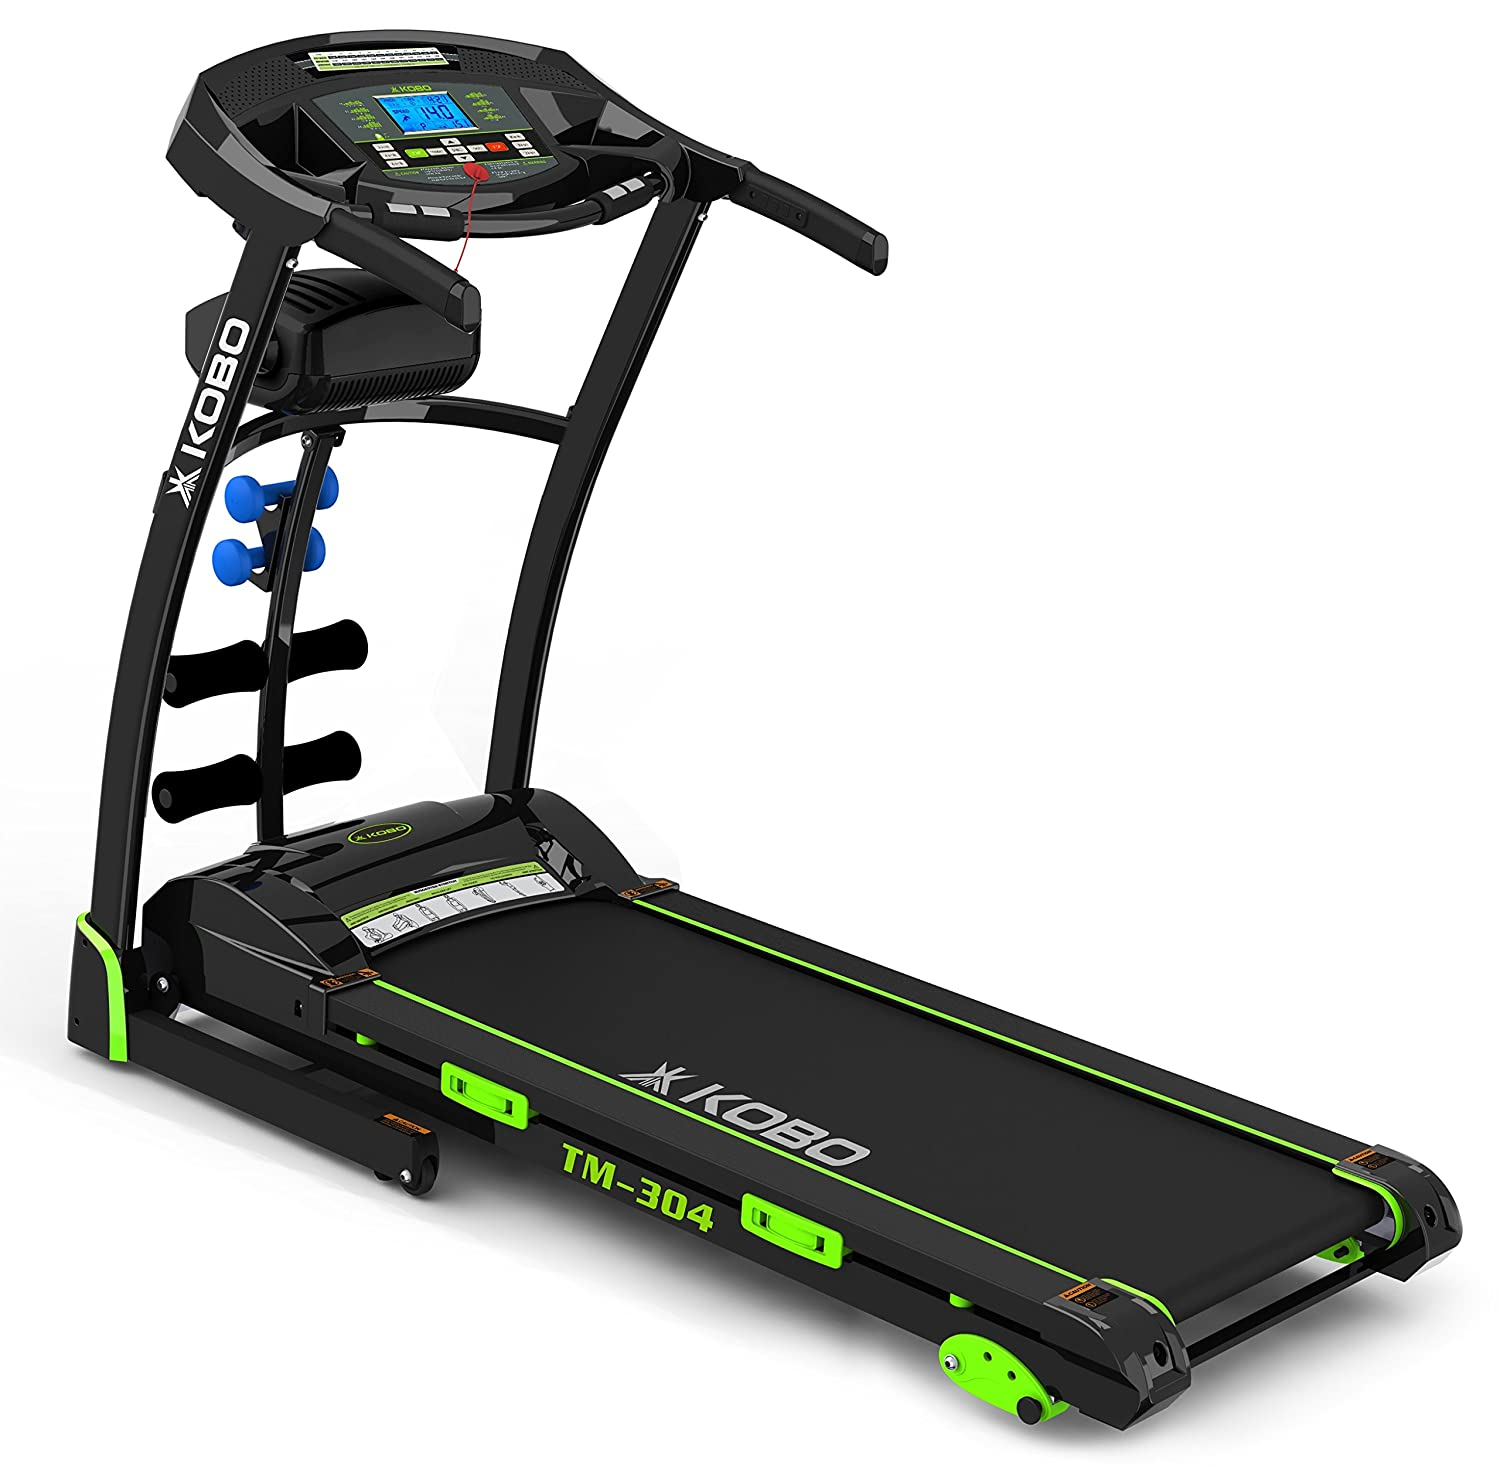 9 Best Treadmill In India To Buy Online For Home 2020 ...